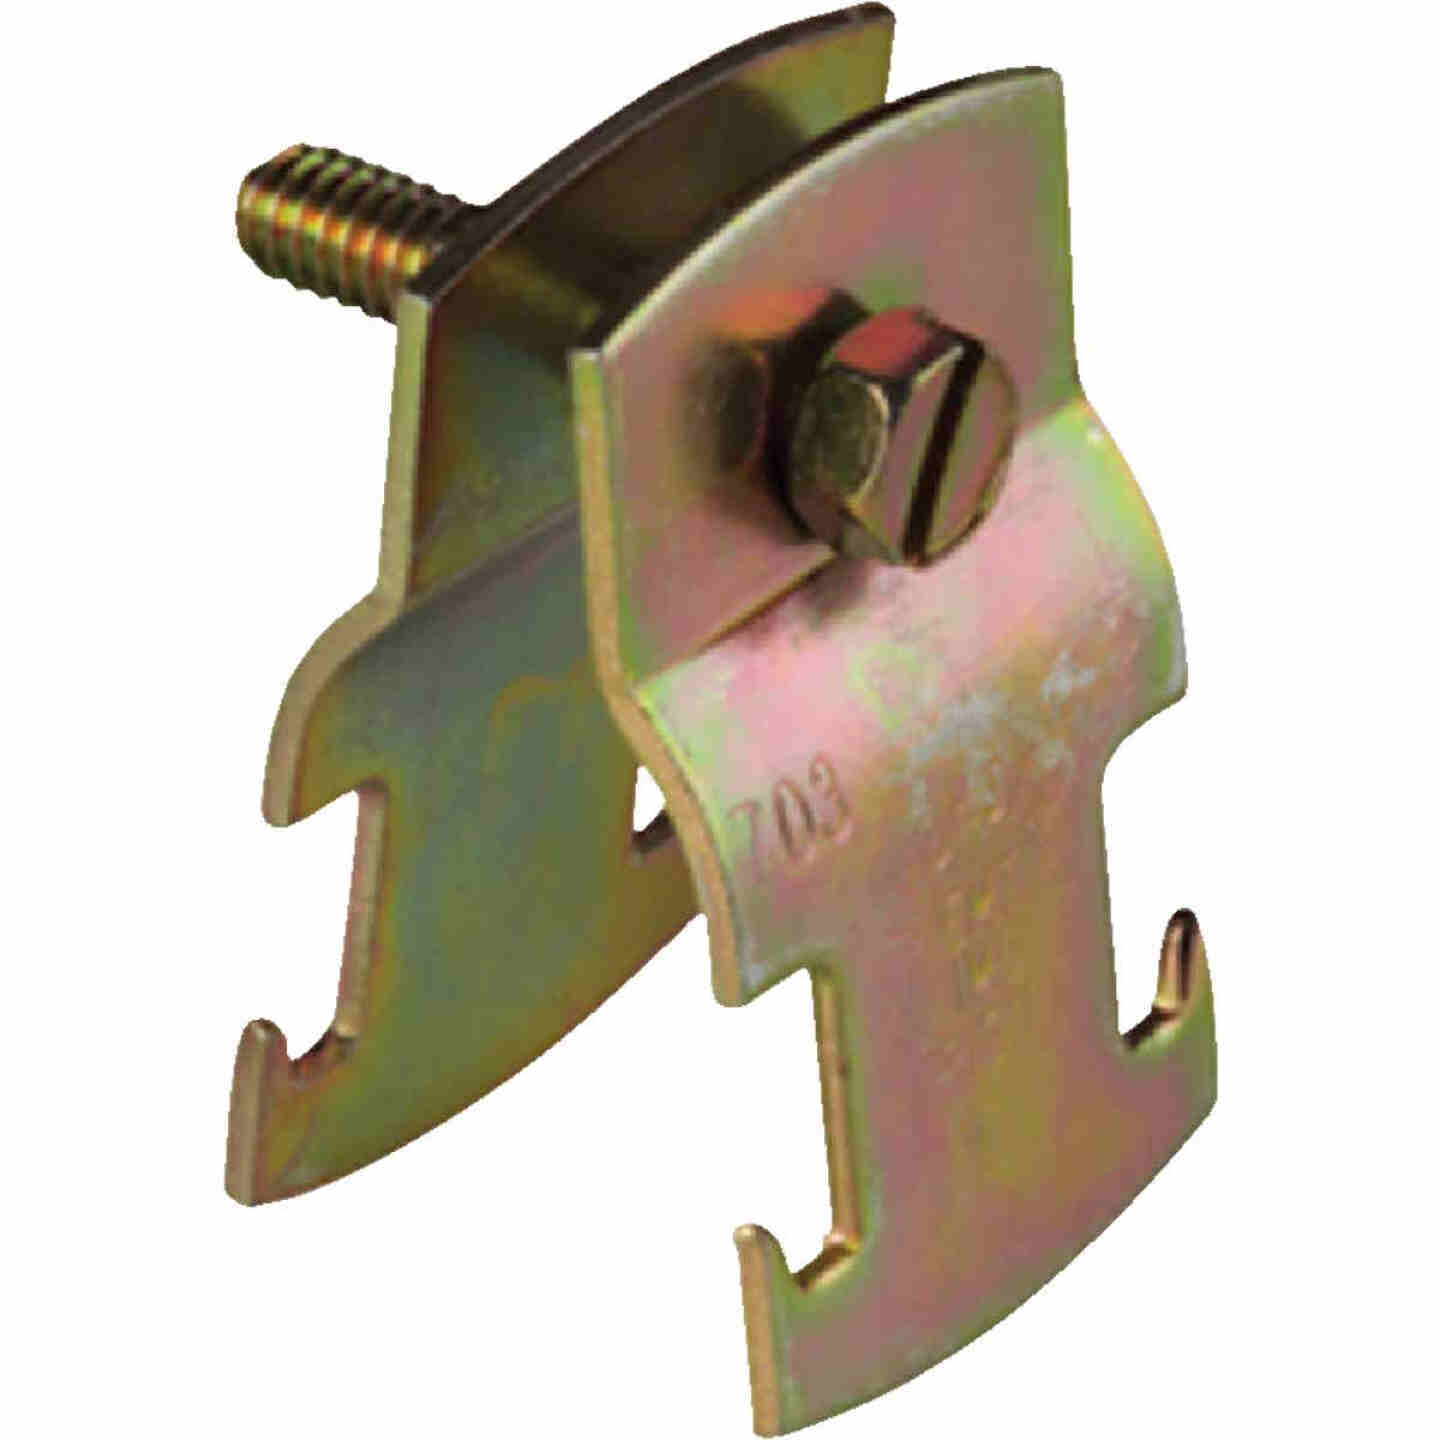 Superstrut 2 In. Gold Galvanized Electroplated Zinc Universal Pipe Clamp Image 1